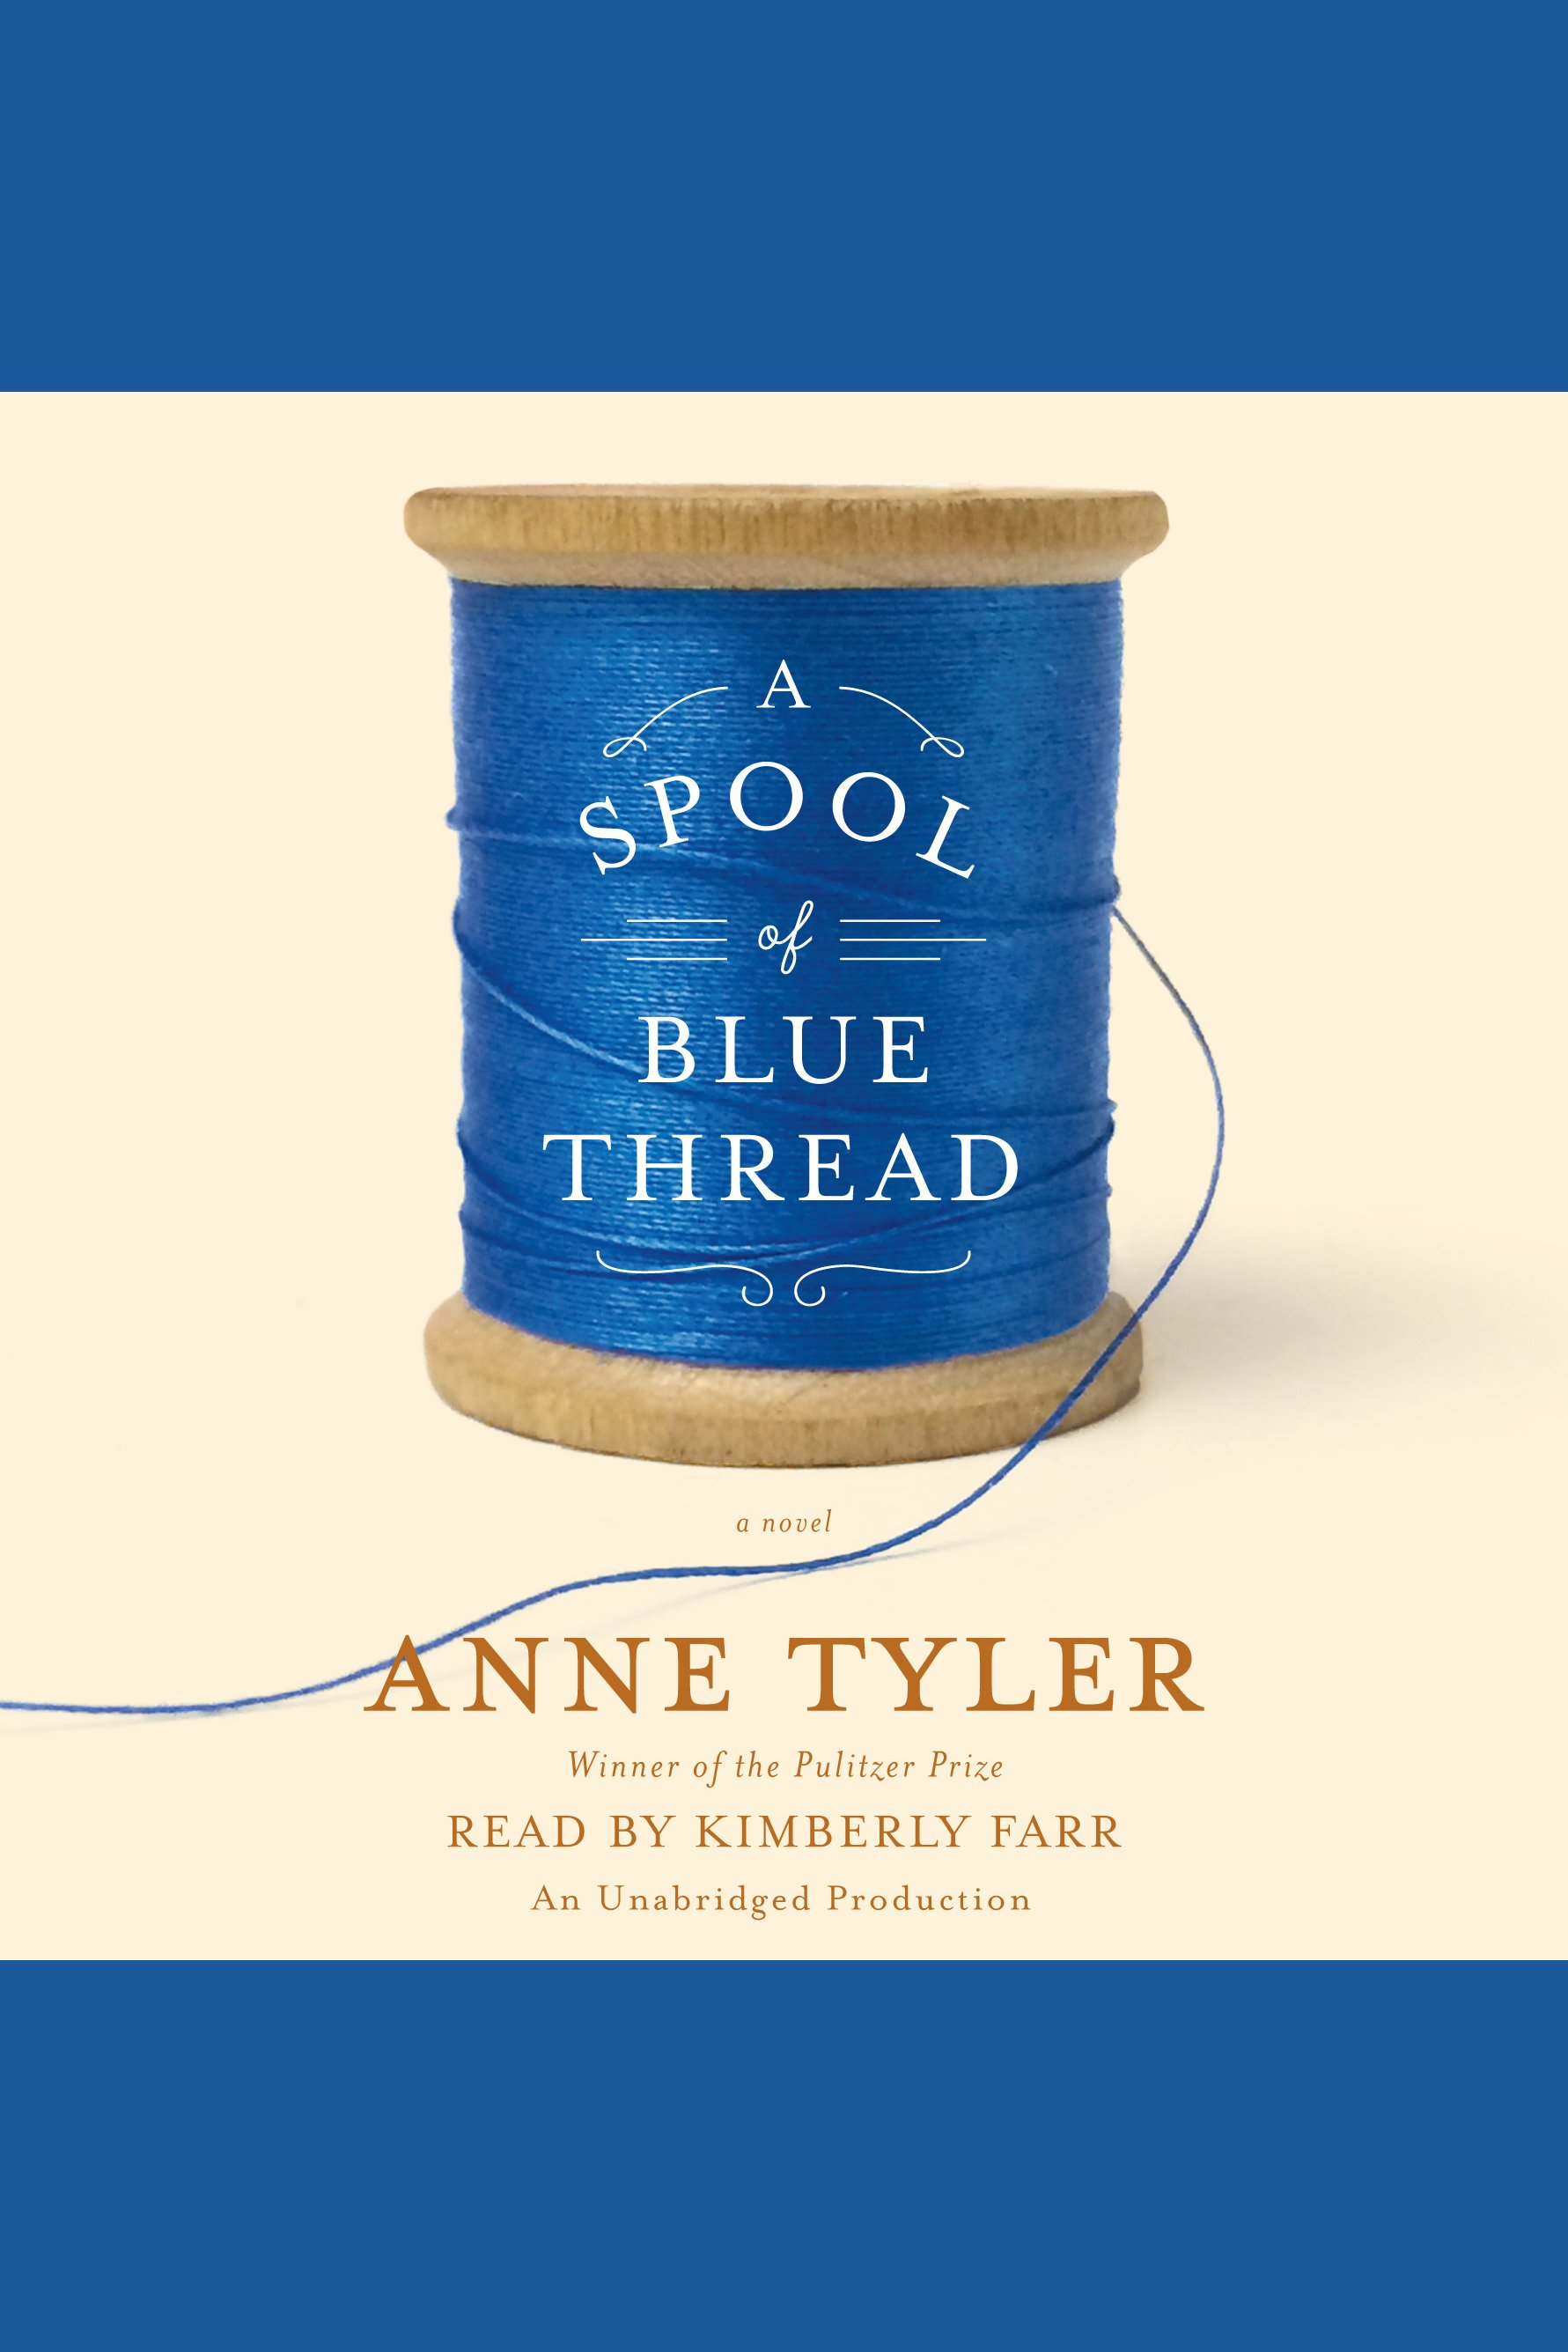 A spool of blue thread cover image